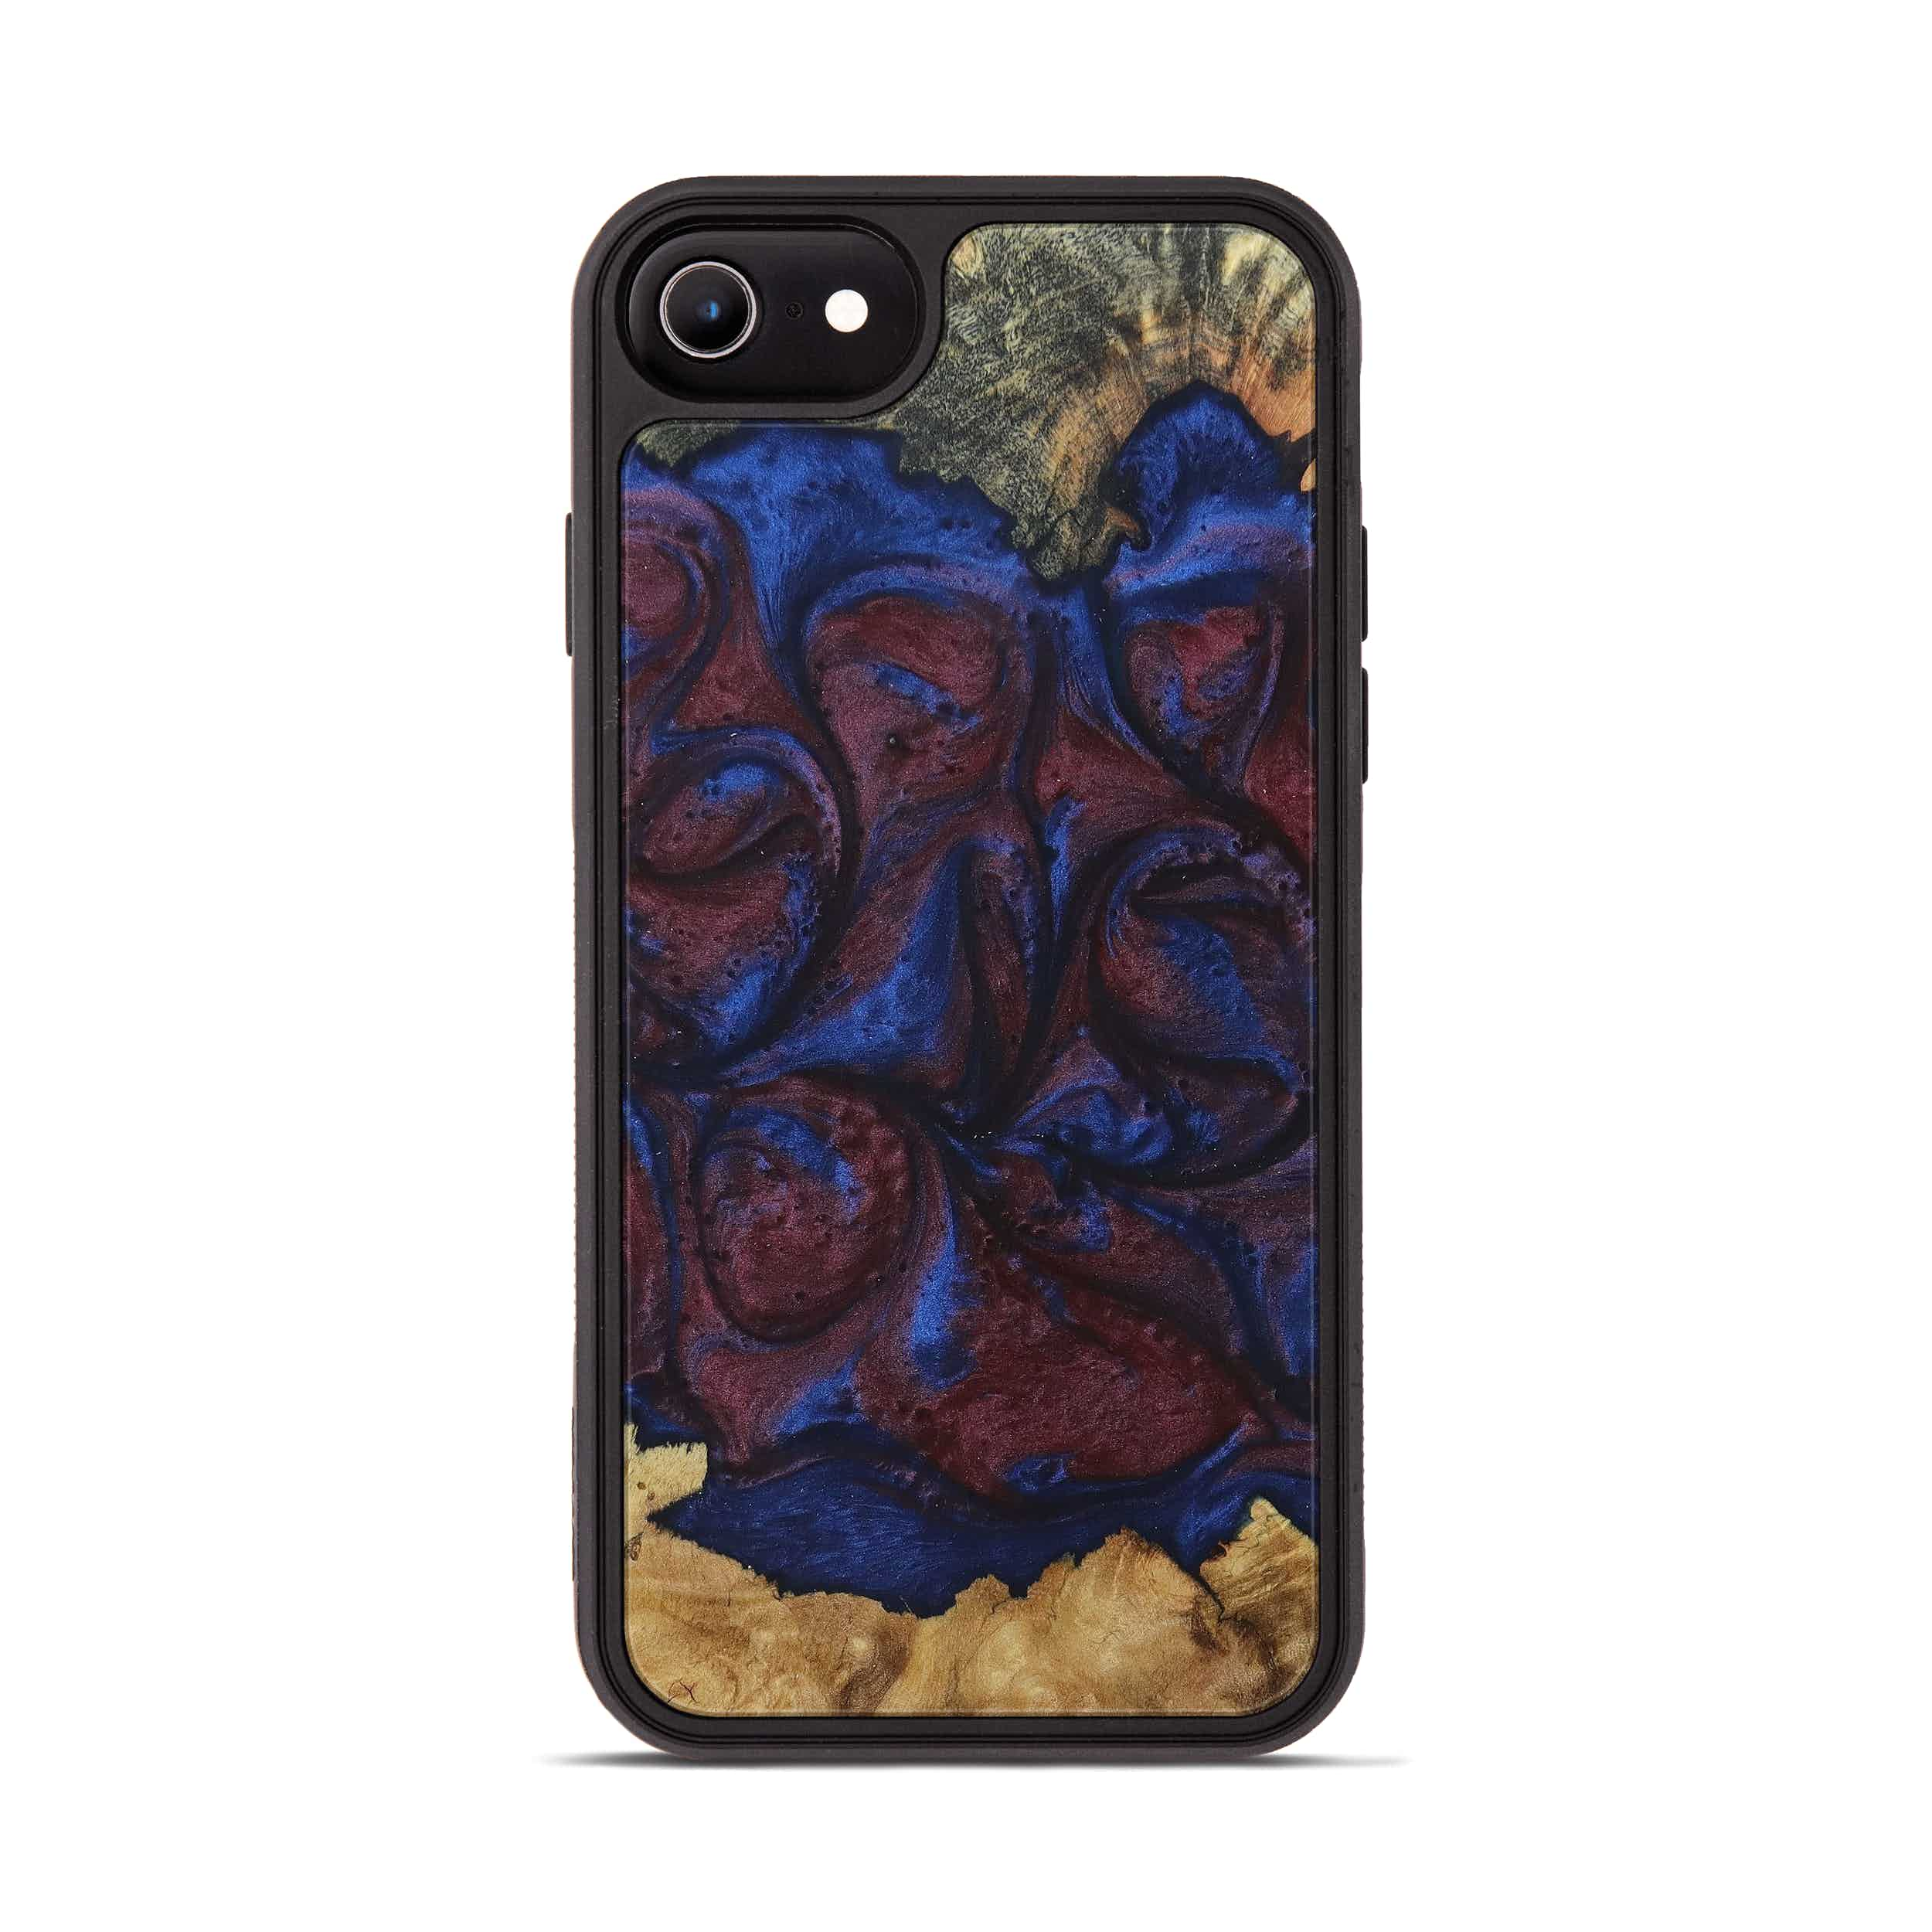 iPhone 6s Wood+Resin Phone Case - Mireielle (Blue & Red, 394797)